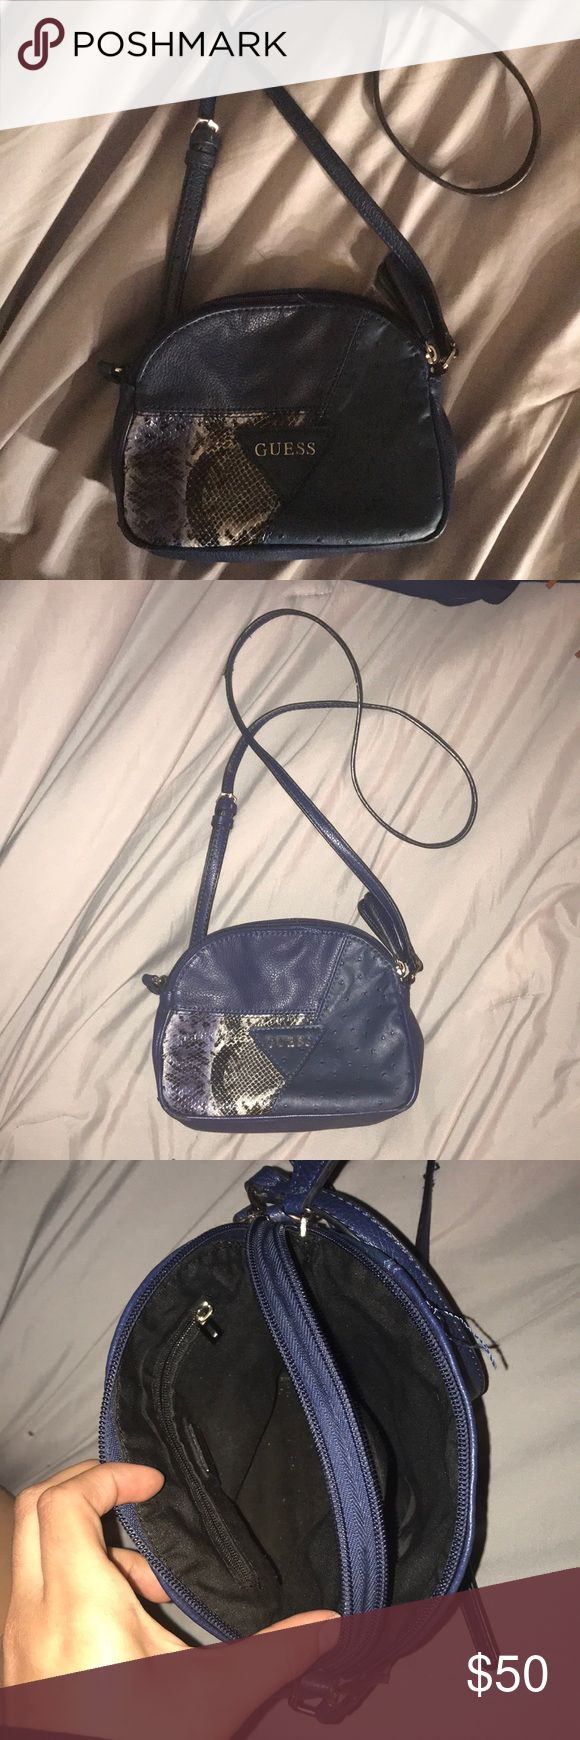 Guess Crossbody Purse Royal Blue With Imitation Ostrich And Snake Skin Bags